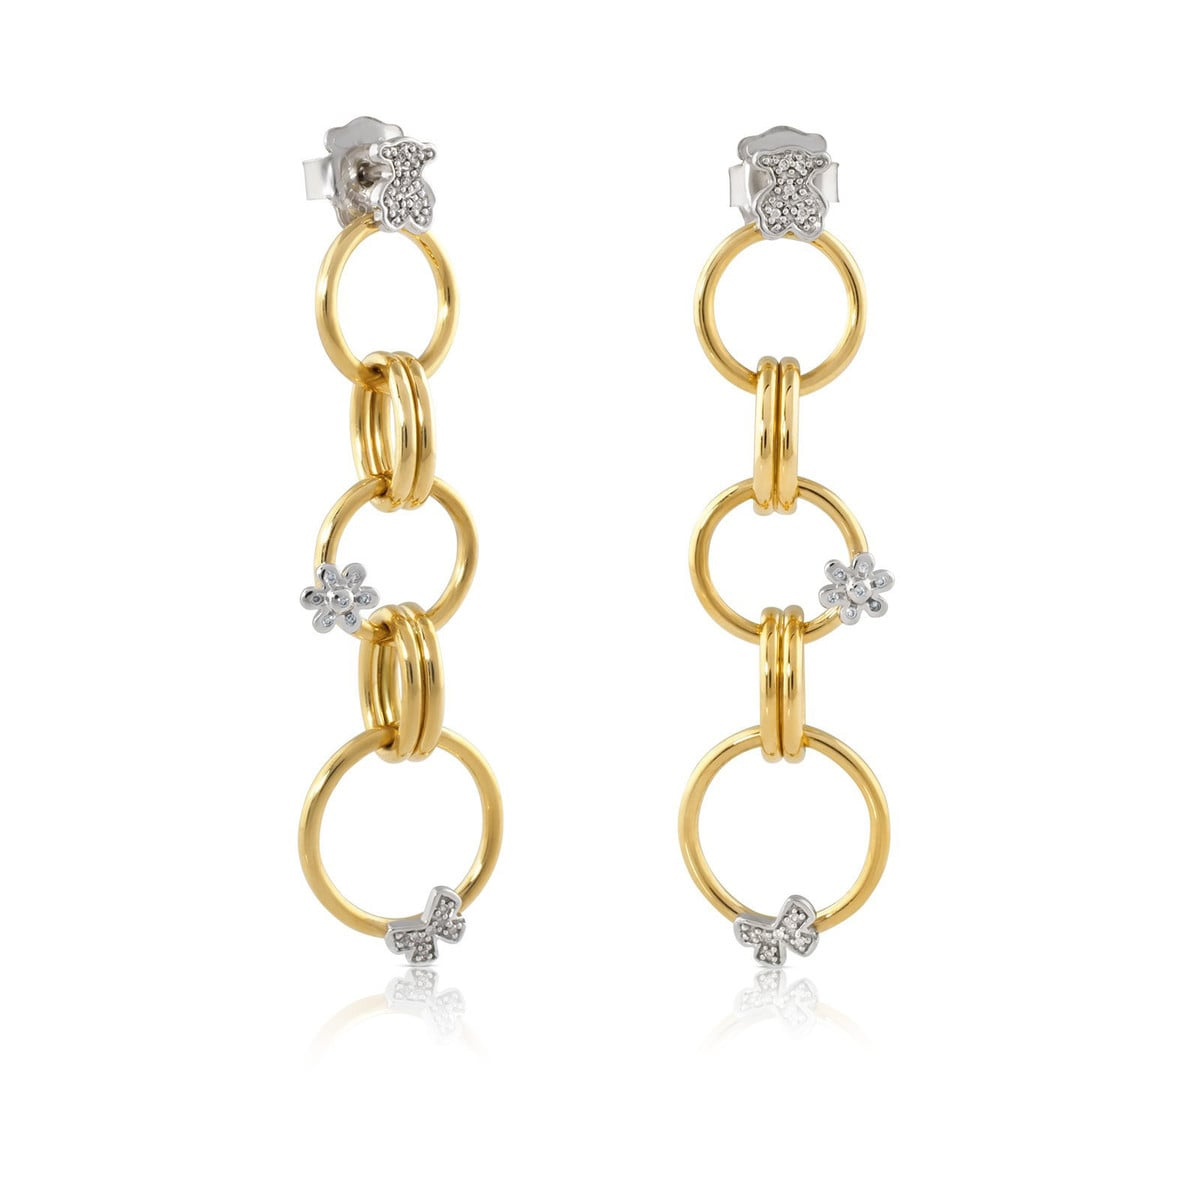 White and Yellow Motif Earrings with Diamond